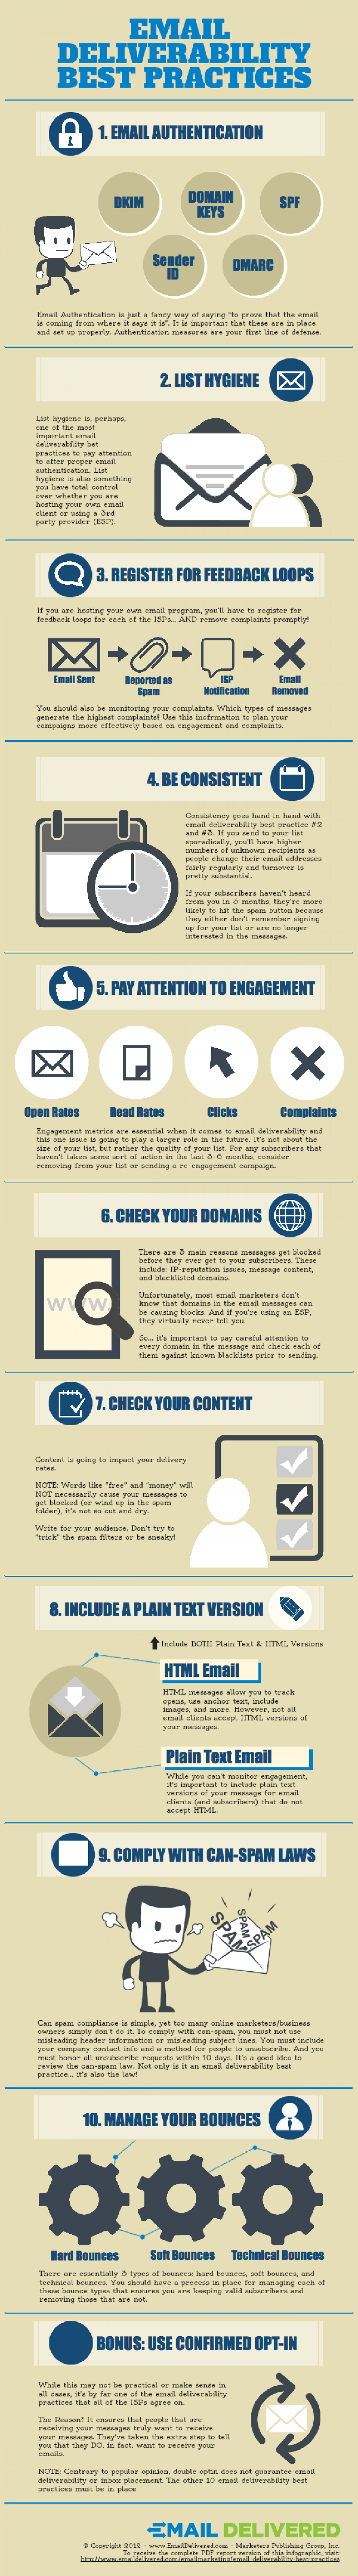 Email Deliverability Best Practices Infographic